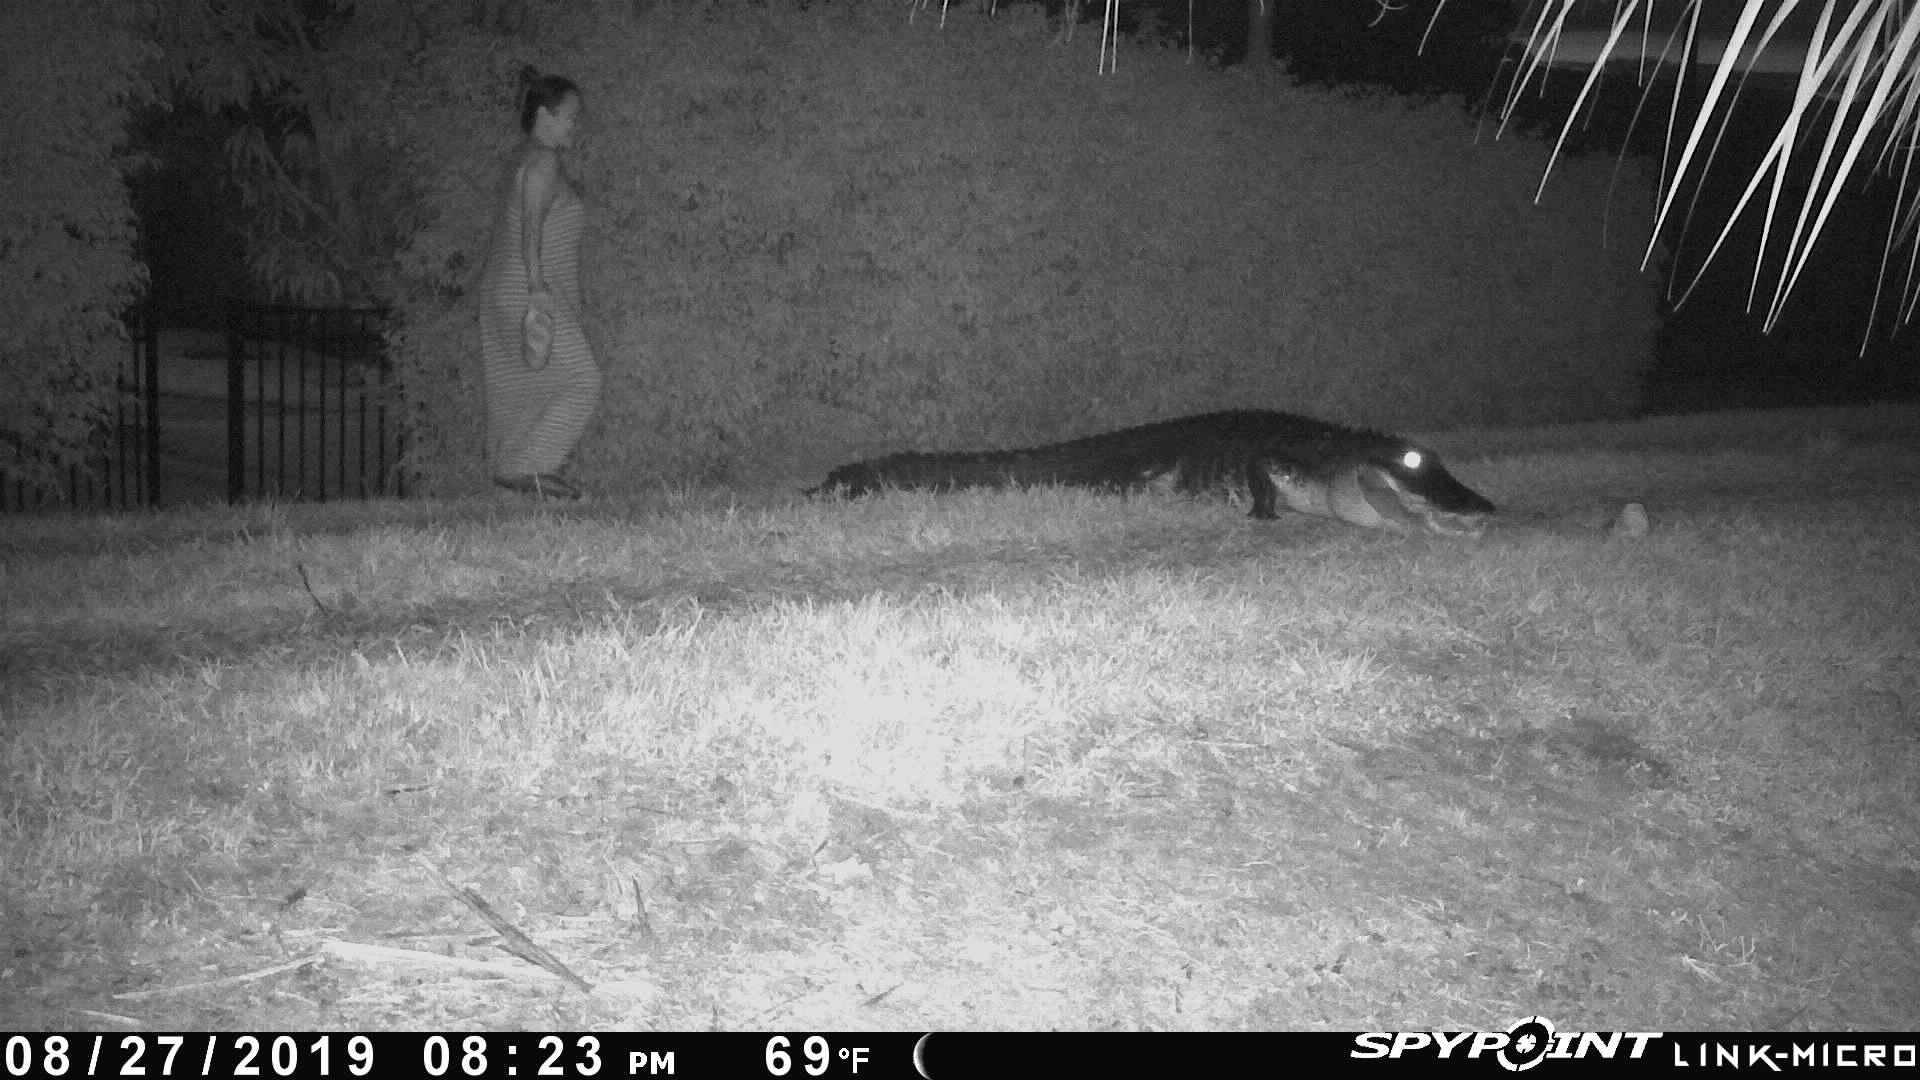 Florida woman who fed alligators, vultures near golf course ... on oregon micro homes, micro a frame homes, micro tiny house, micro home's interior, portable micro homes, micro camping, best micro homes, safe prefab mini homes, micro homes living small, micro swimming pools, micro pod homes, cheap micro homes, eco-friendly prefab homes, truck trailer homes, micro home kitchens, best prefab homes, micro mini houses, small cottage style modular homes, micro campers, micro home communities,